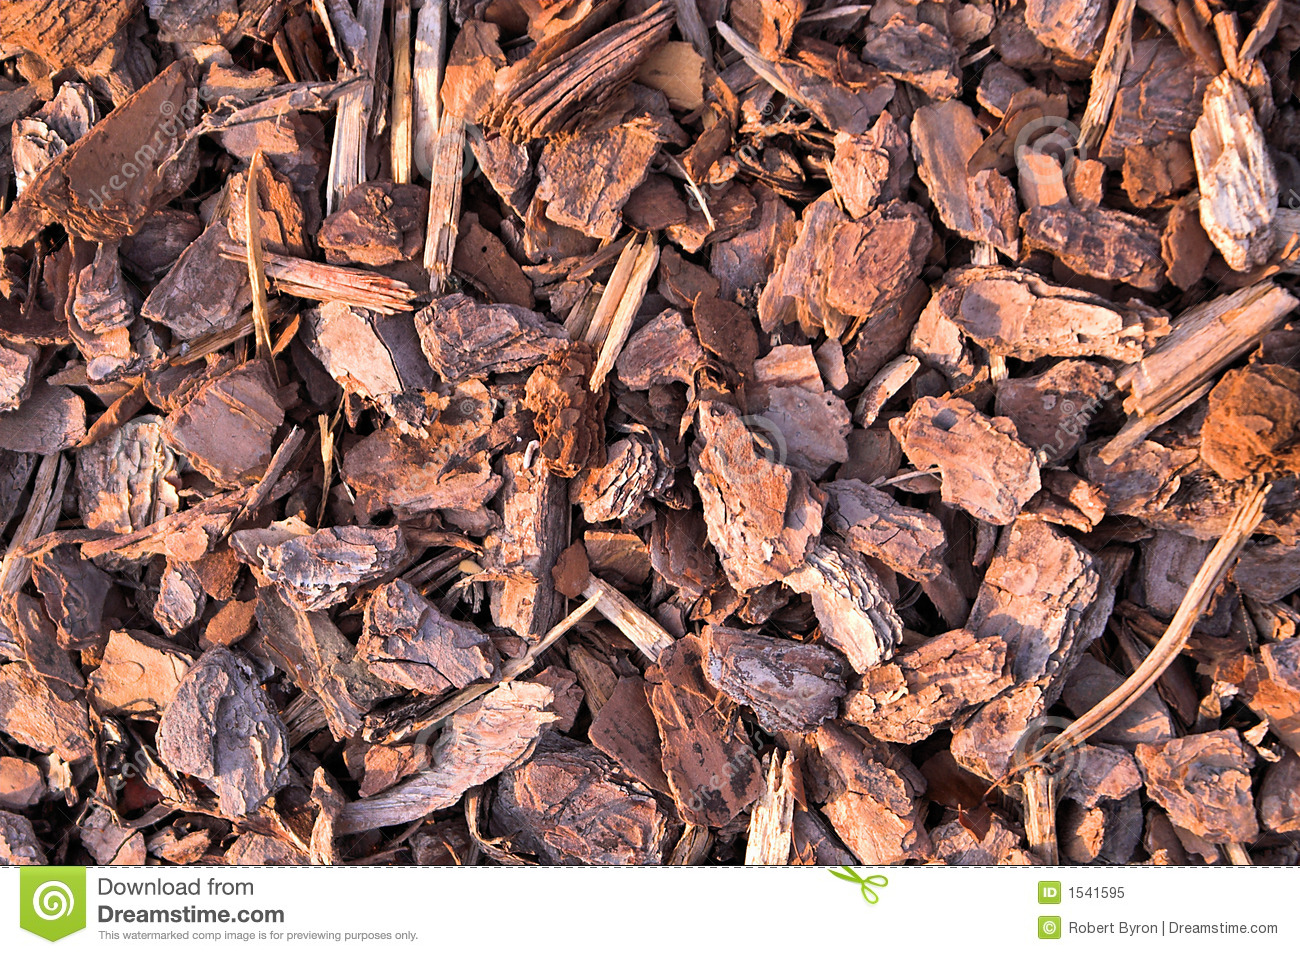 pine bark mulch stock image image of decoration material 1541595. Black Bedroom Furniture Sets. Home Design Ideas